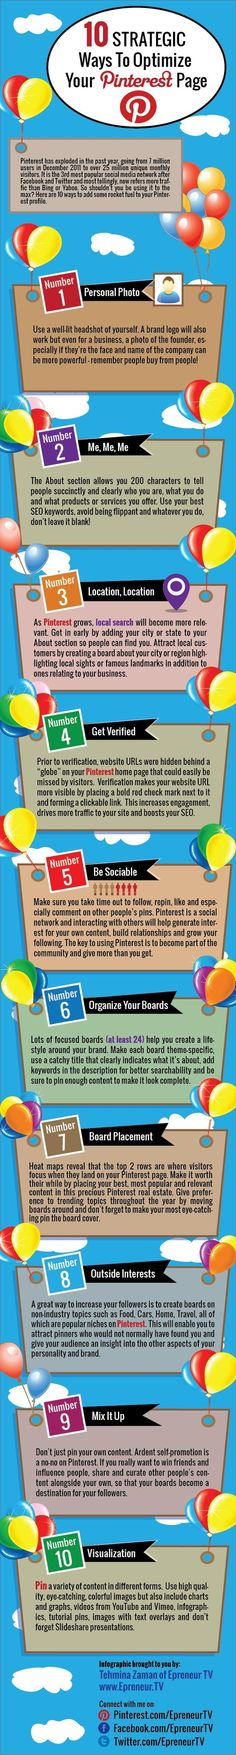 10-Ways-Optimize-Pinterest